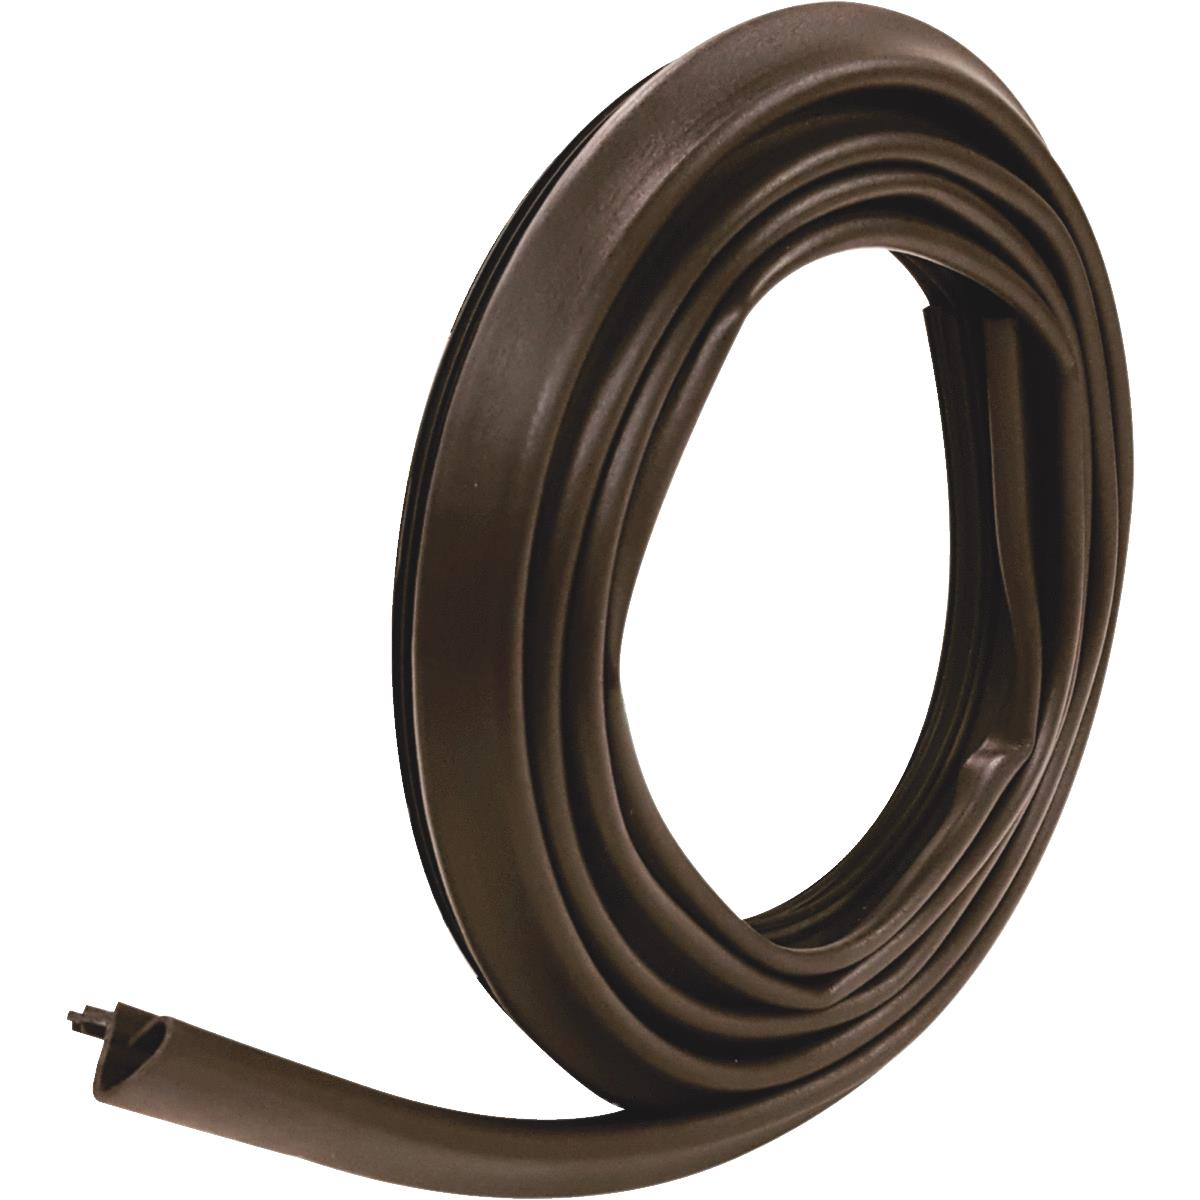 7' Brown Weatherstrip, PartNo ES184B, by Thermwell, Single Unit